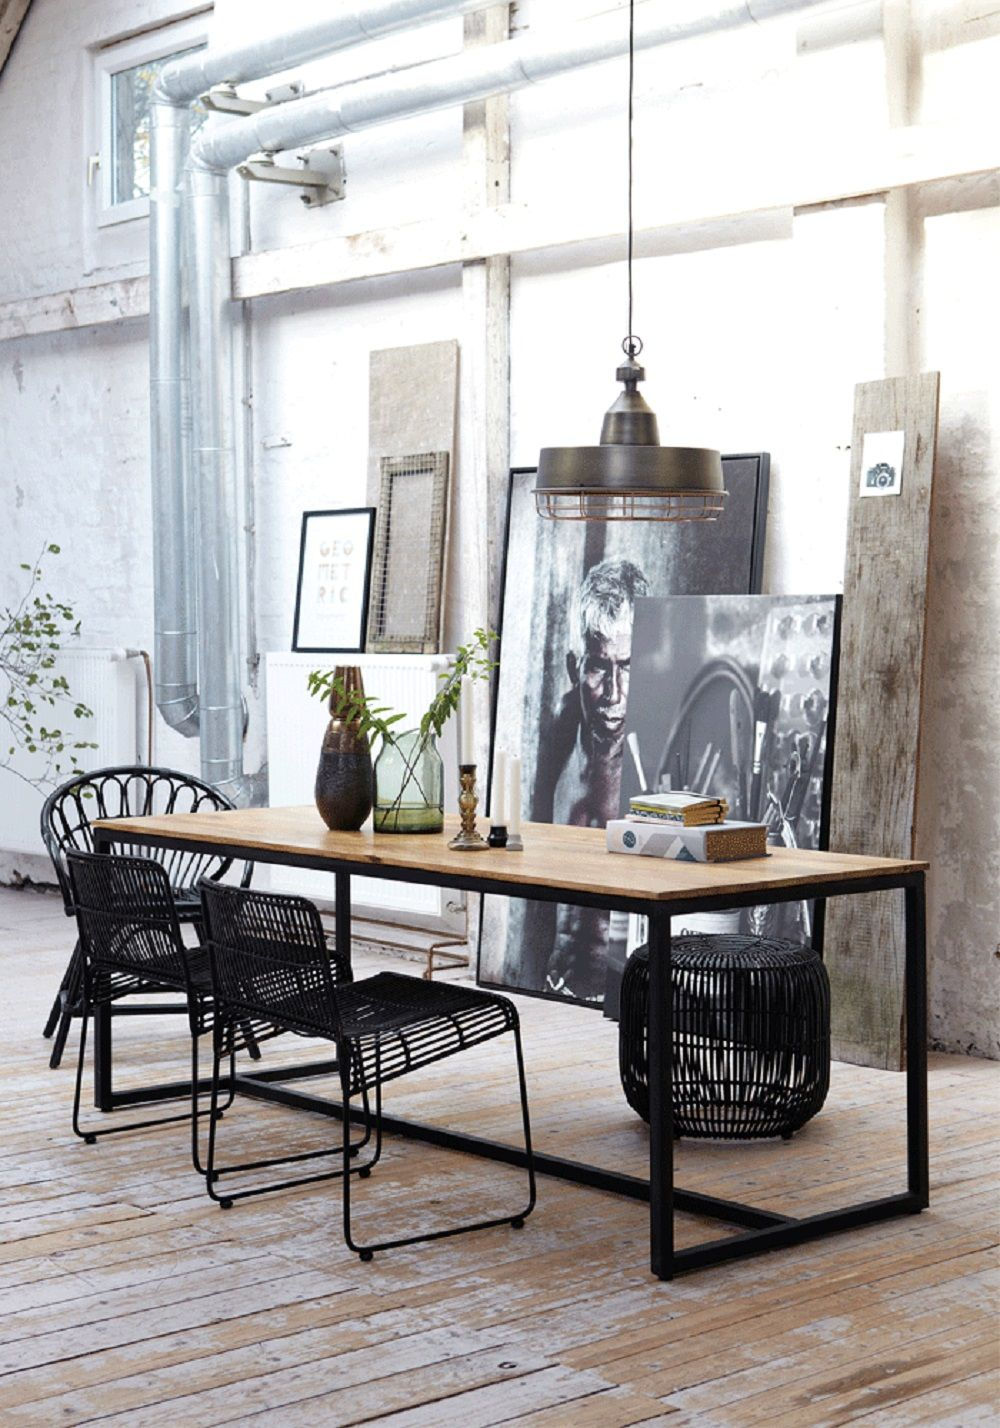 Beautiful Dining Room Mid Century Black Railing Chairs Mixed With Vintage Industrial  Dining Table And Floor ArtDining Room Mid Century Black Railing Chairs  Mixed With ...